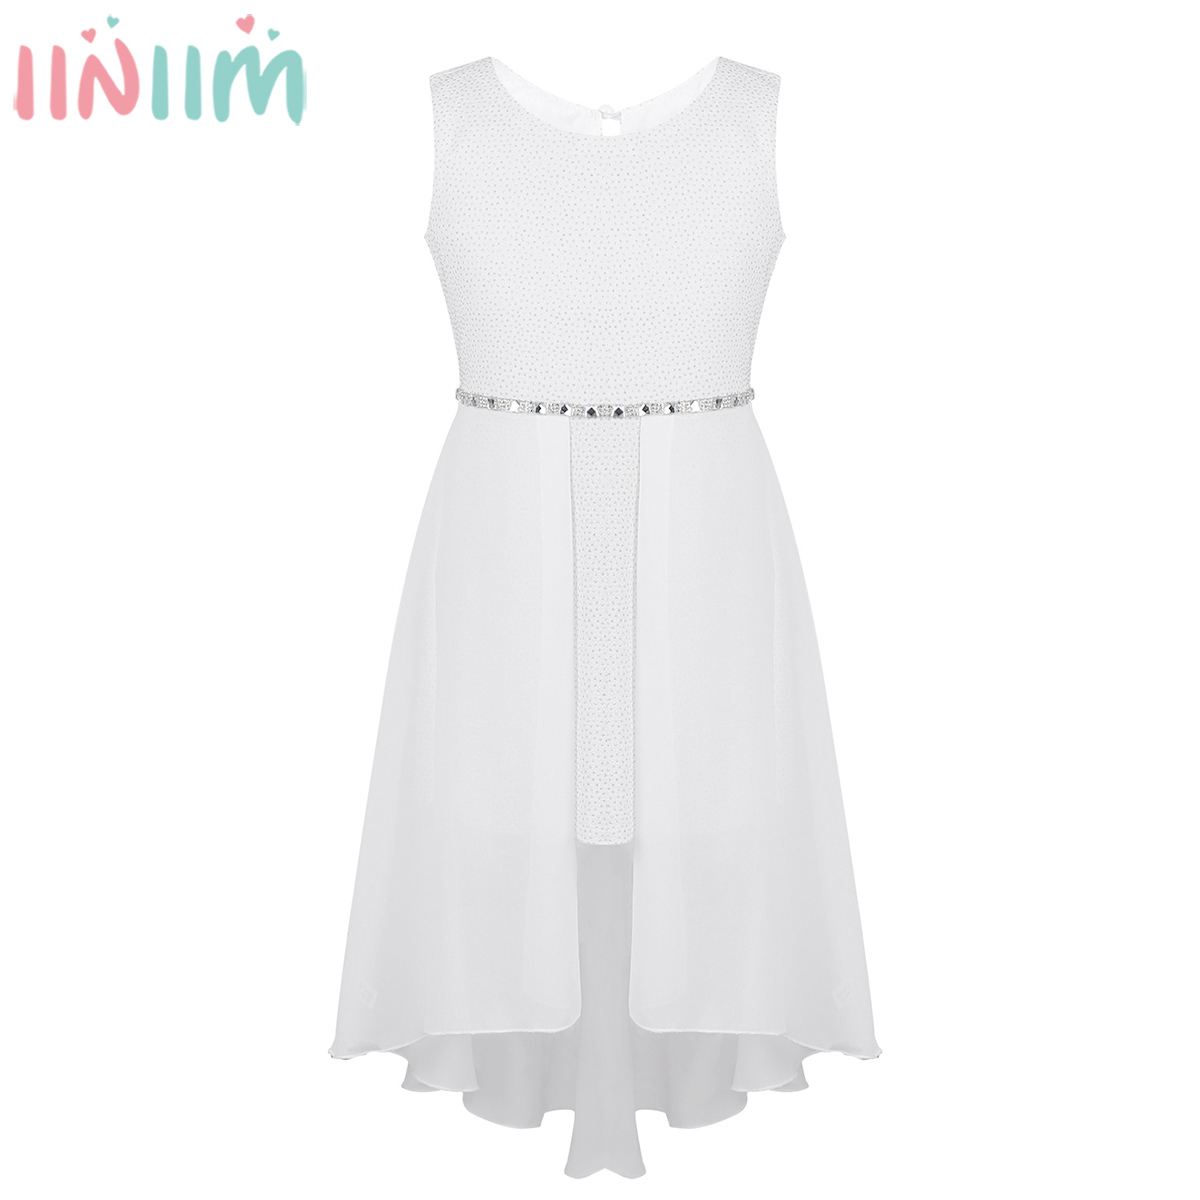 Iiniim Dress Rhinestone Waist-High-Low Sparkly Birthday Teen Kids Casual For Girls 6-14-Years title=